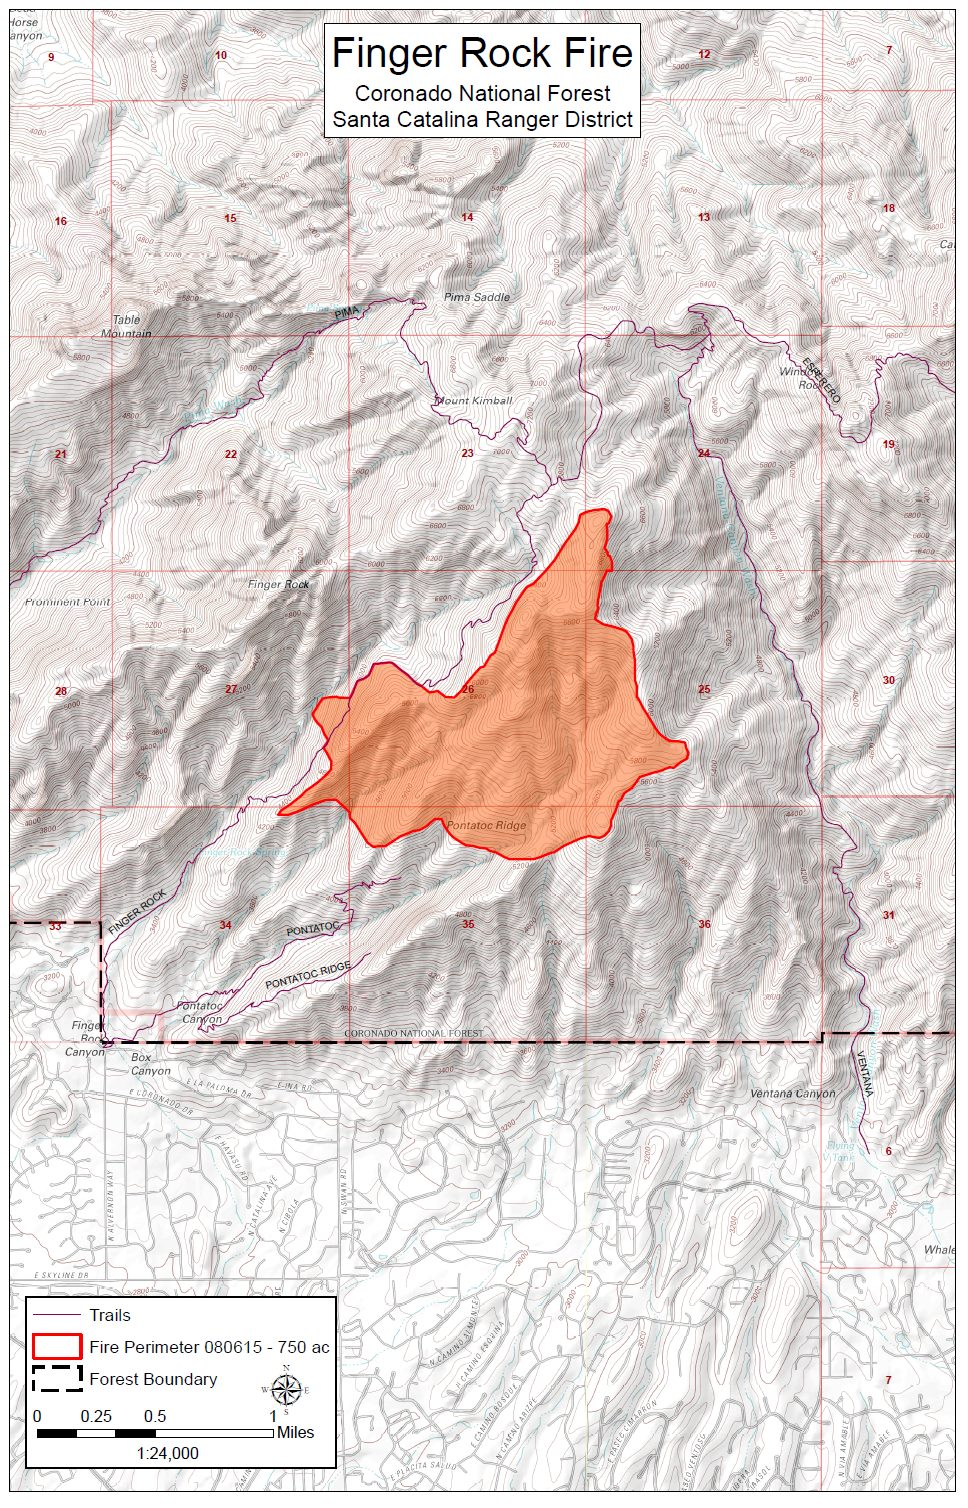 Finger Rock Fire Map posted on Facebook by the Coronado National Forest on 8/6/2015.